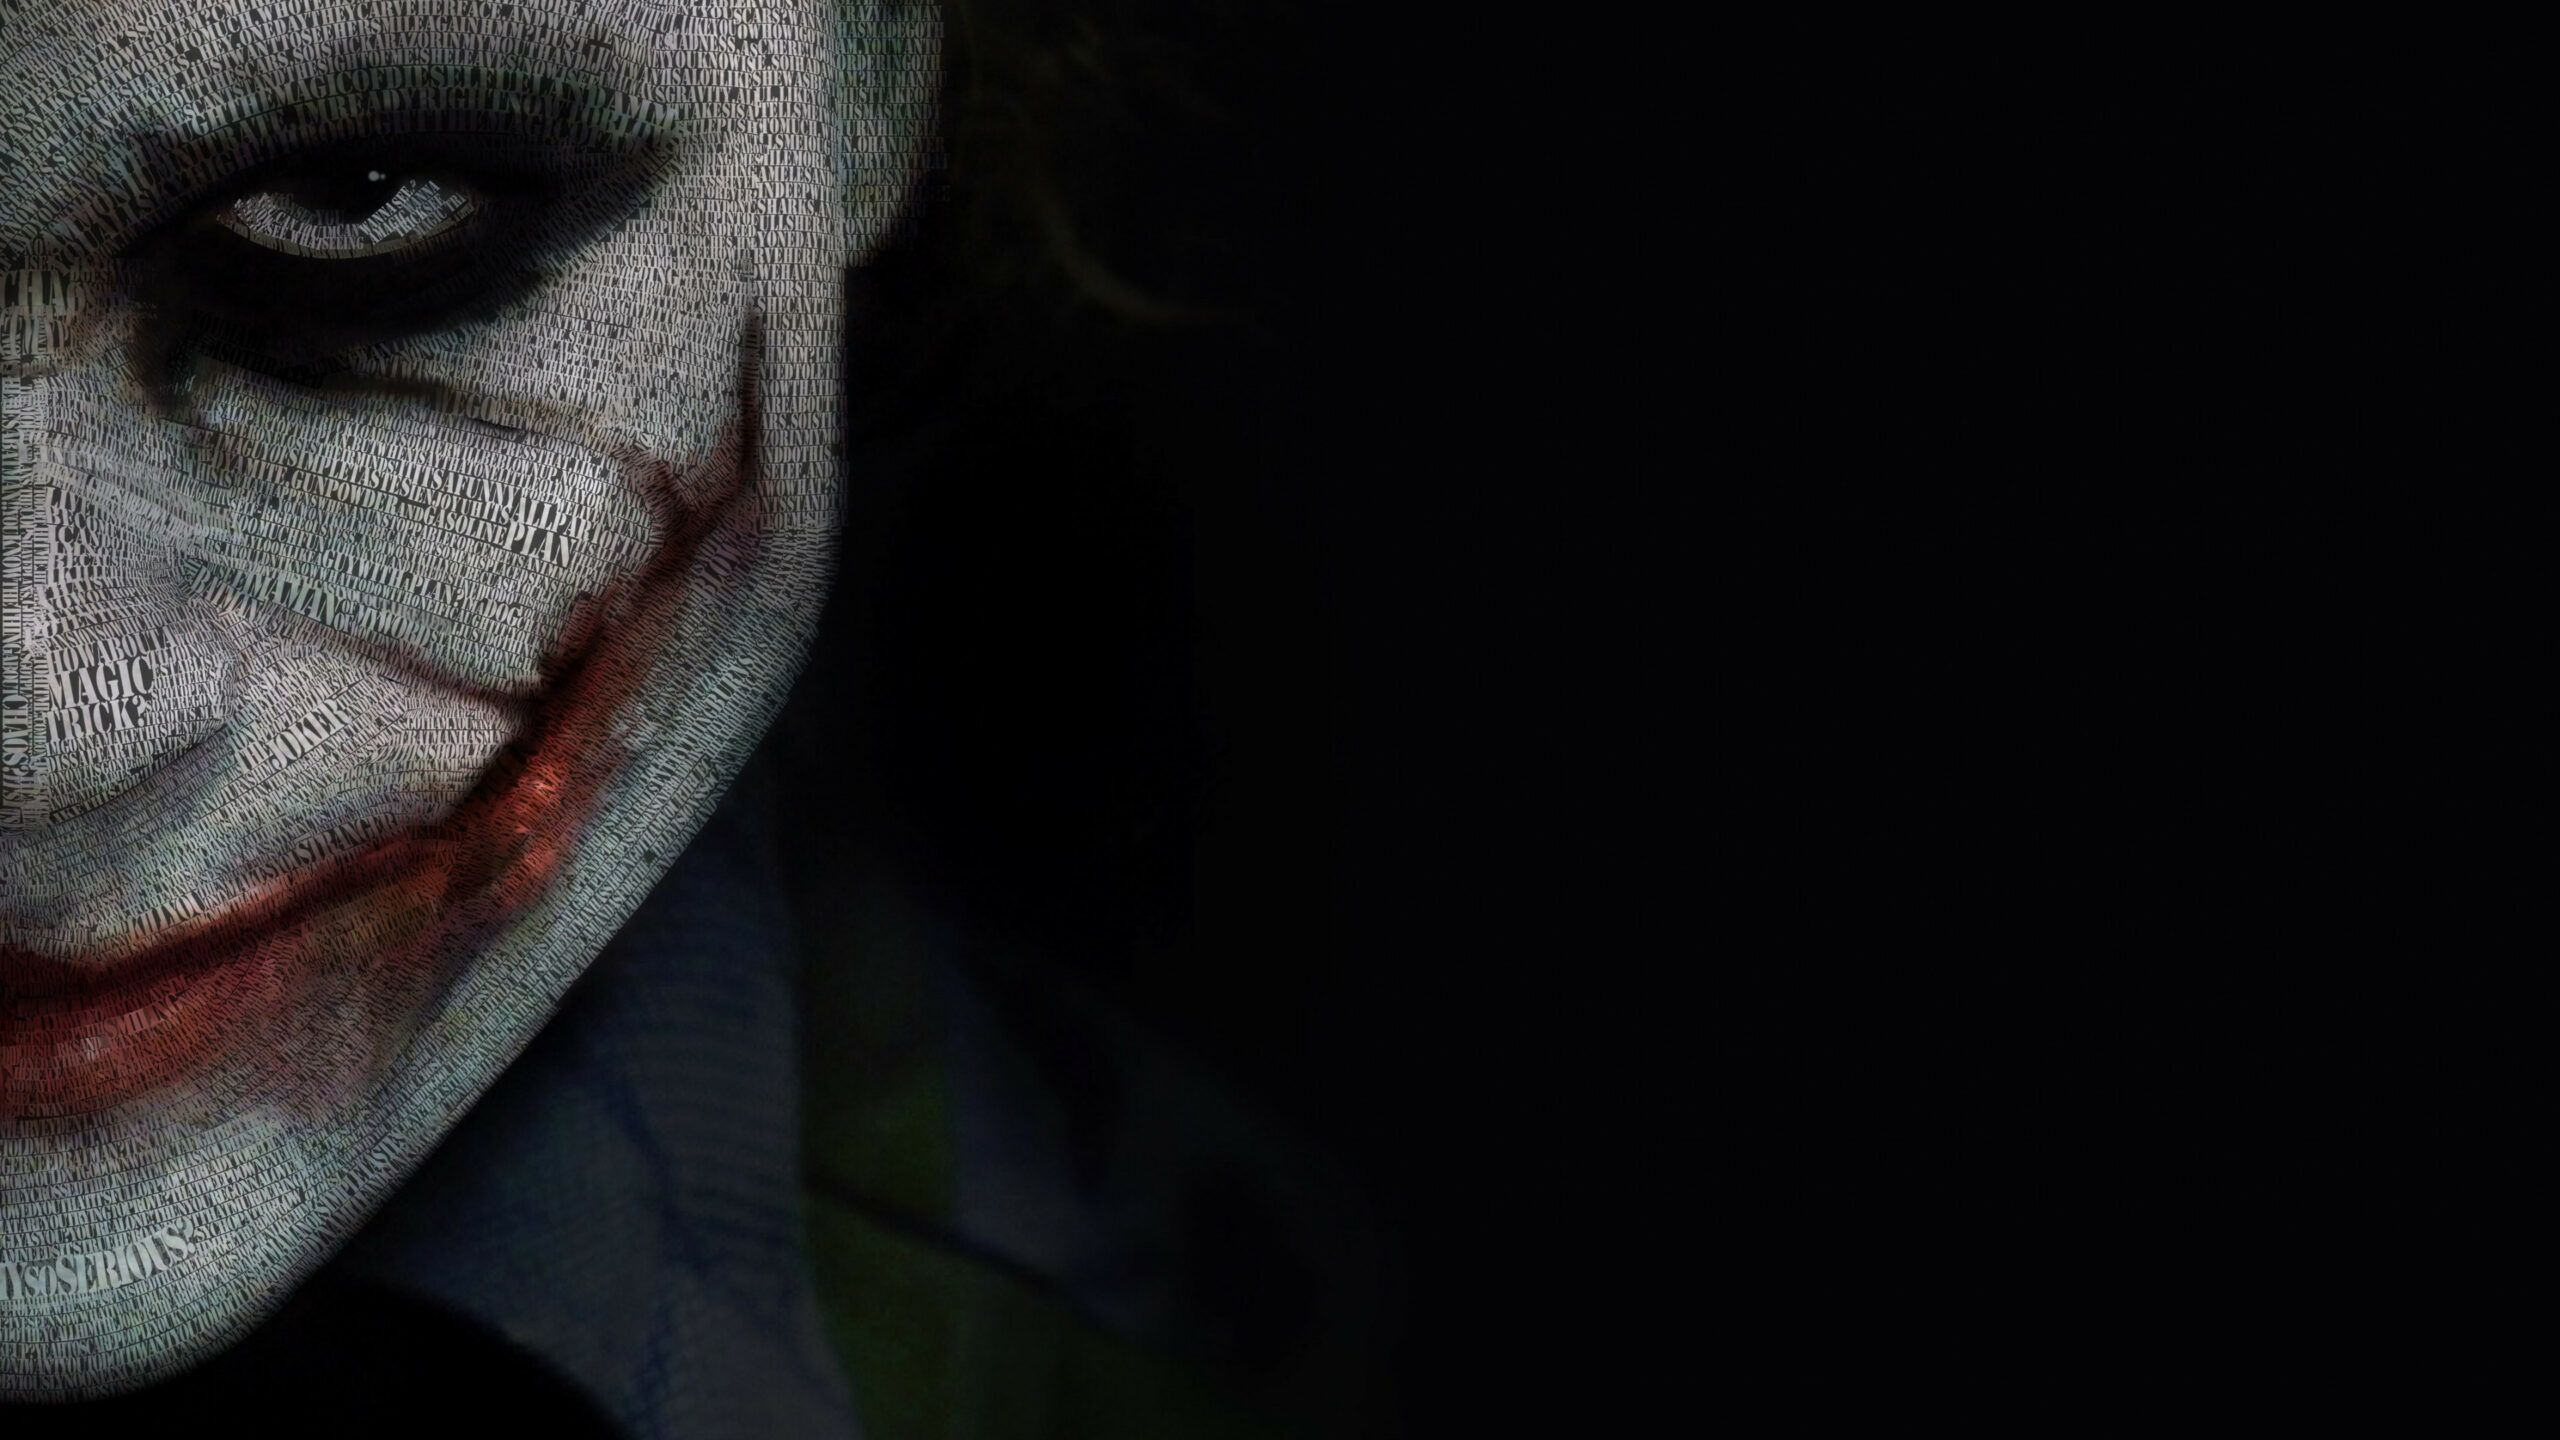 Joker 4k Ultra Hd Wallpaper Download Joker Pics 4k Wallpaper For Mobile Joker Hd Wallpaper